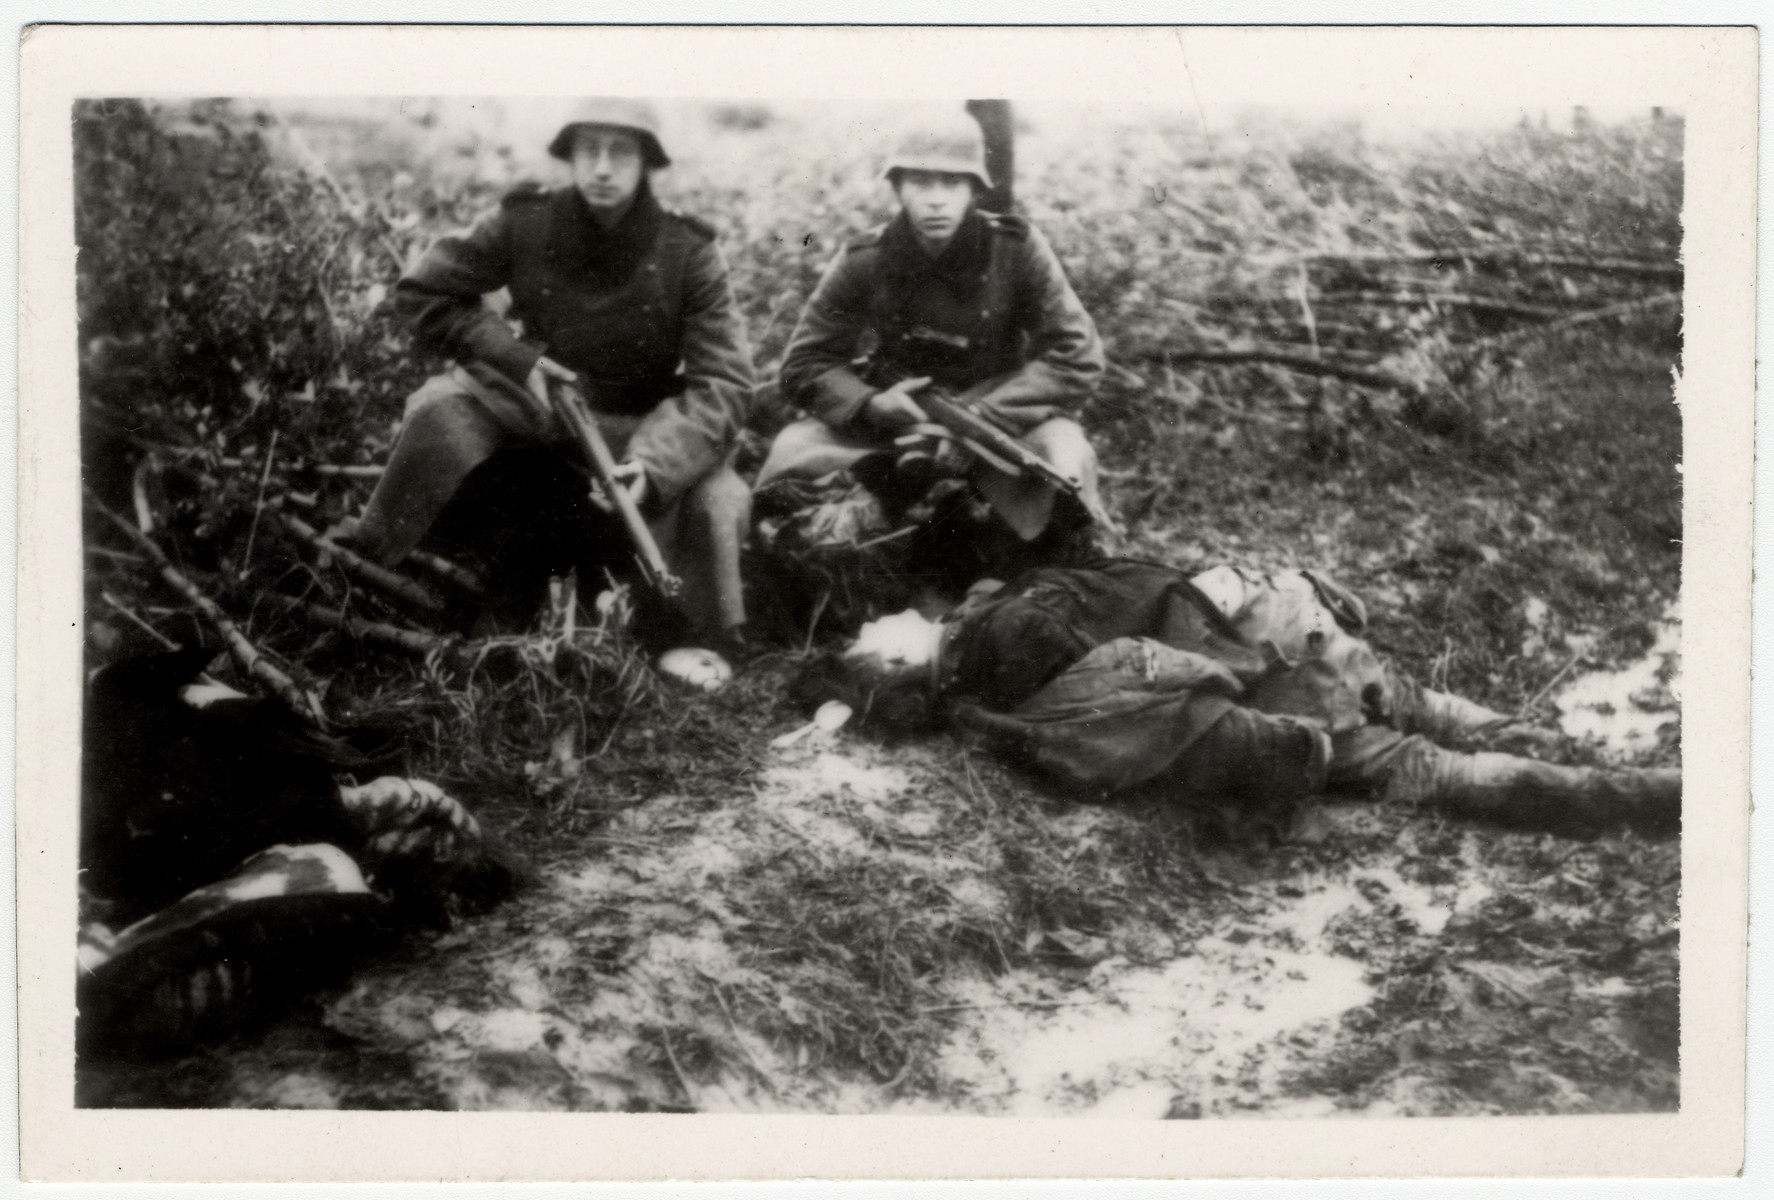 German soldiers pose with the corpses of two recently executed people.